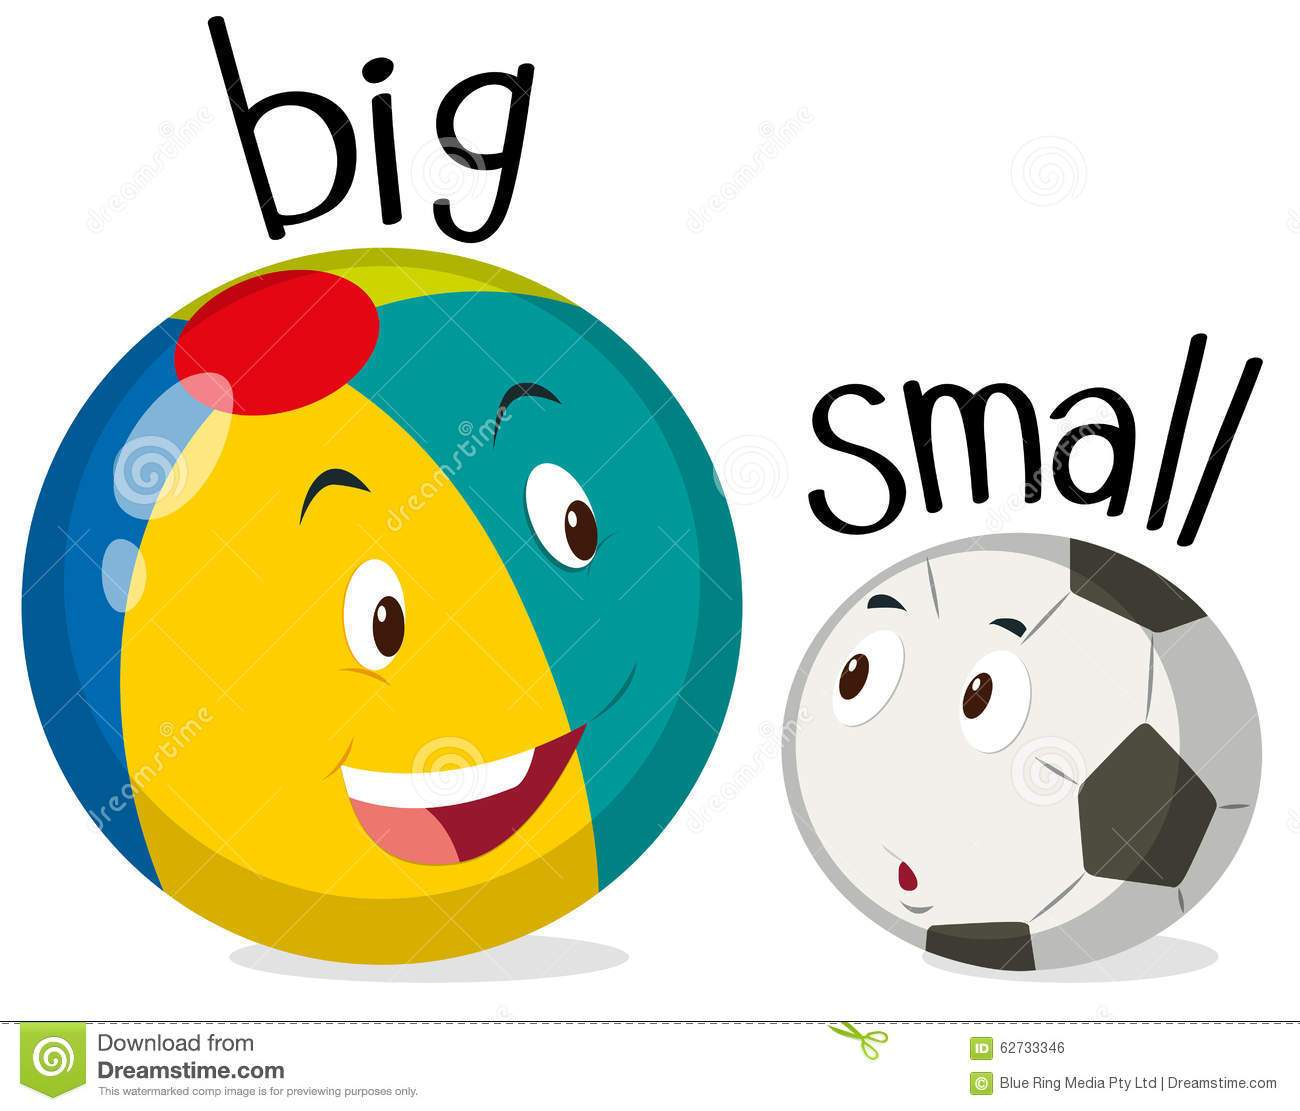 Big and small objects clipart black and white clip art free library Big and small objects clipart black and white 5 » Clipart Portal clip art free library